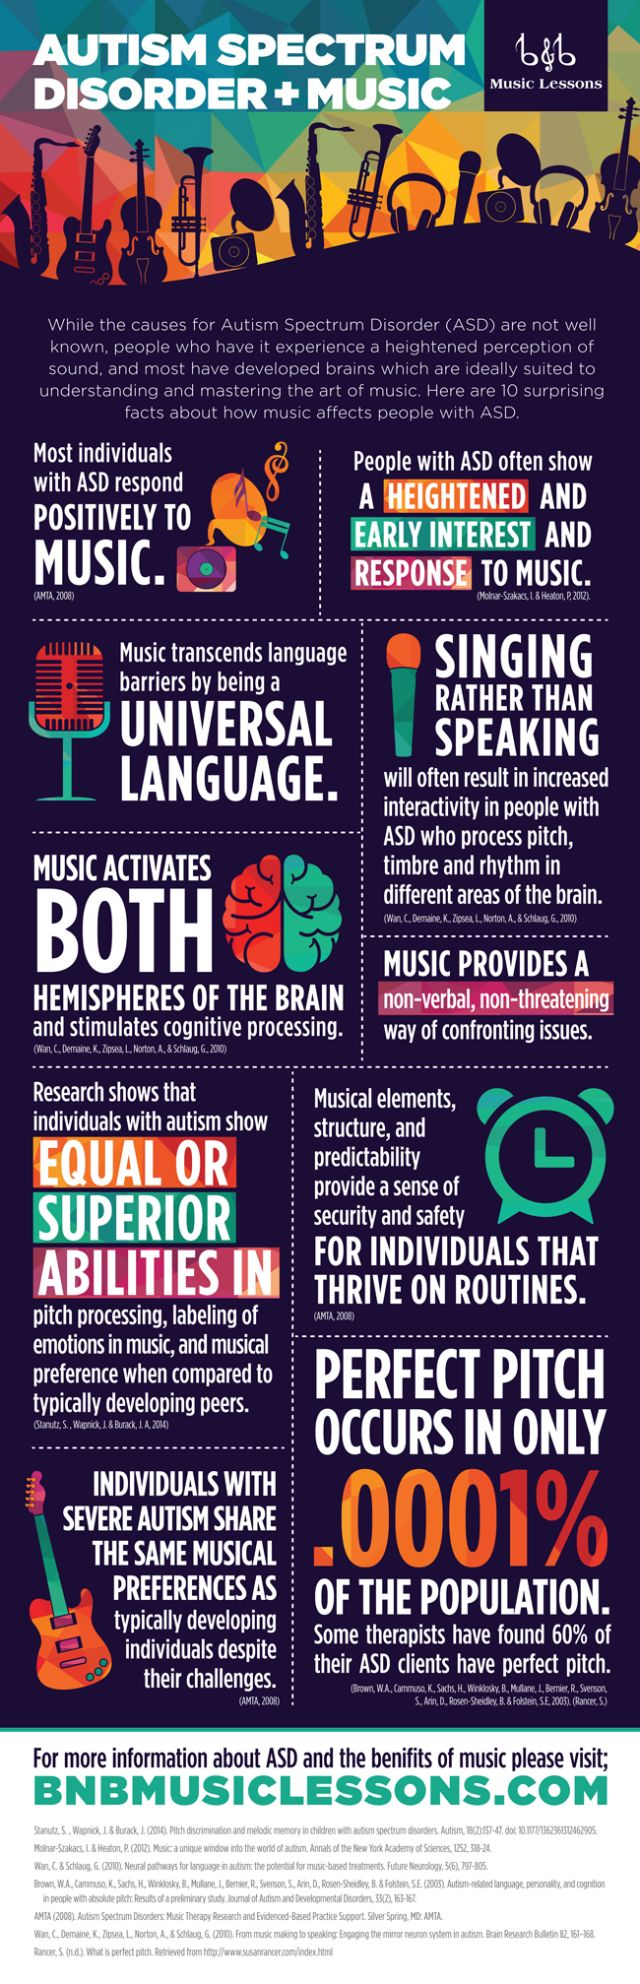 Autism Spectrum Disorder and Music #infographic #ASD #Music #Health